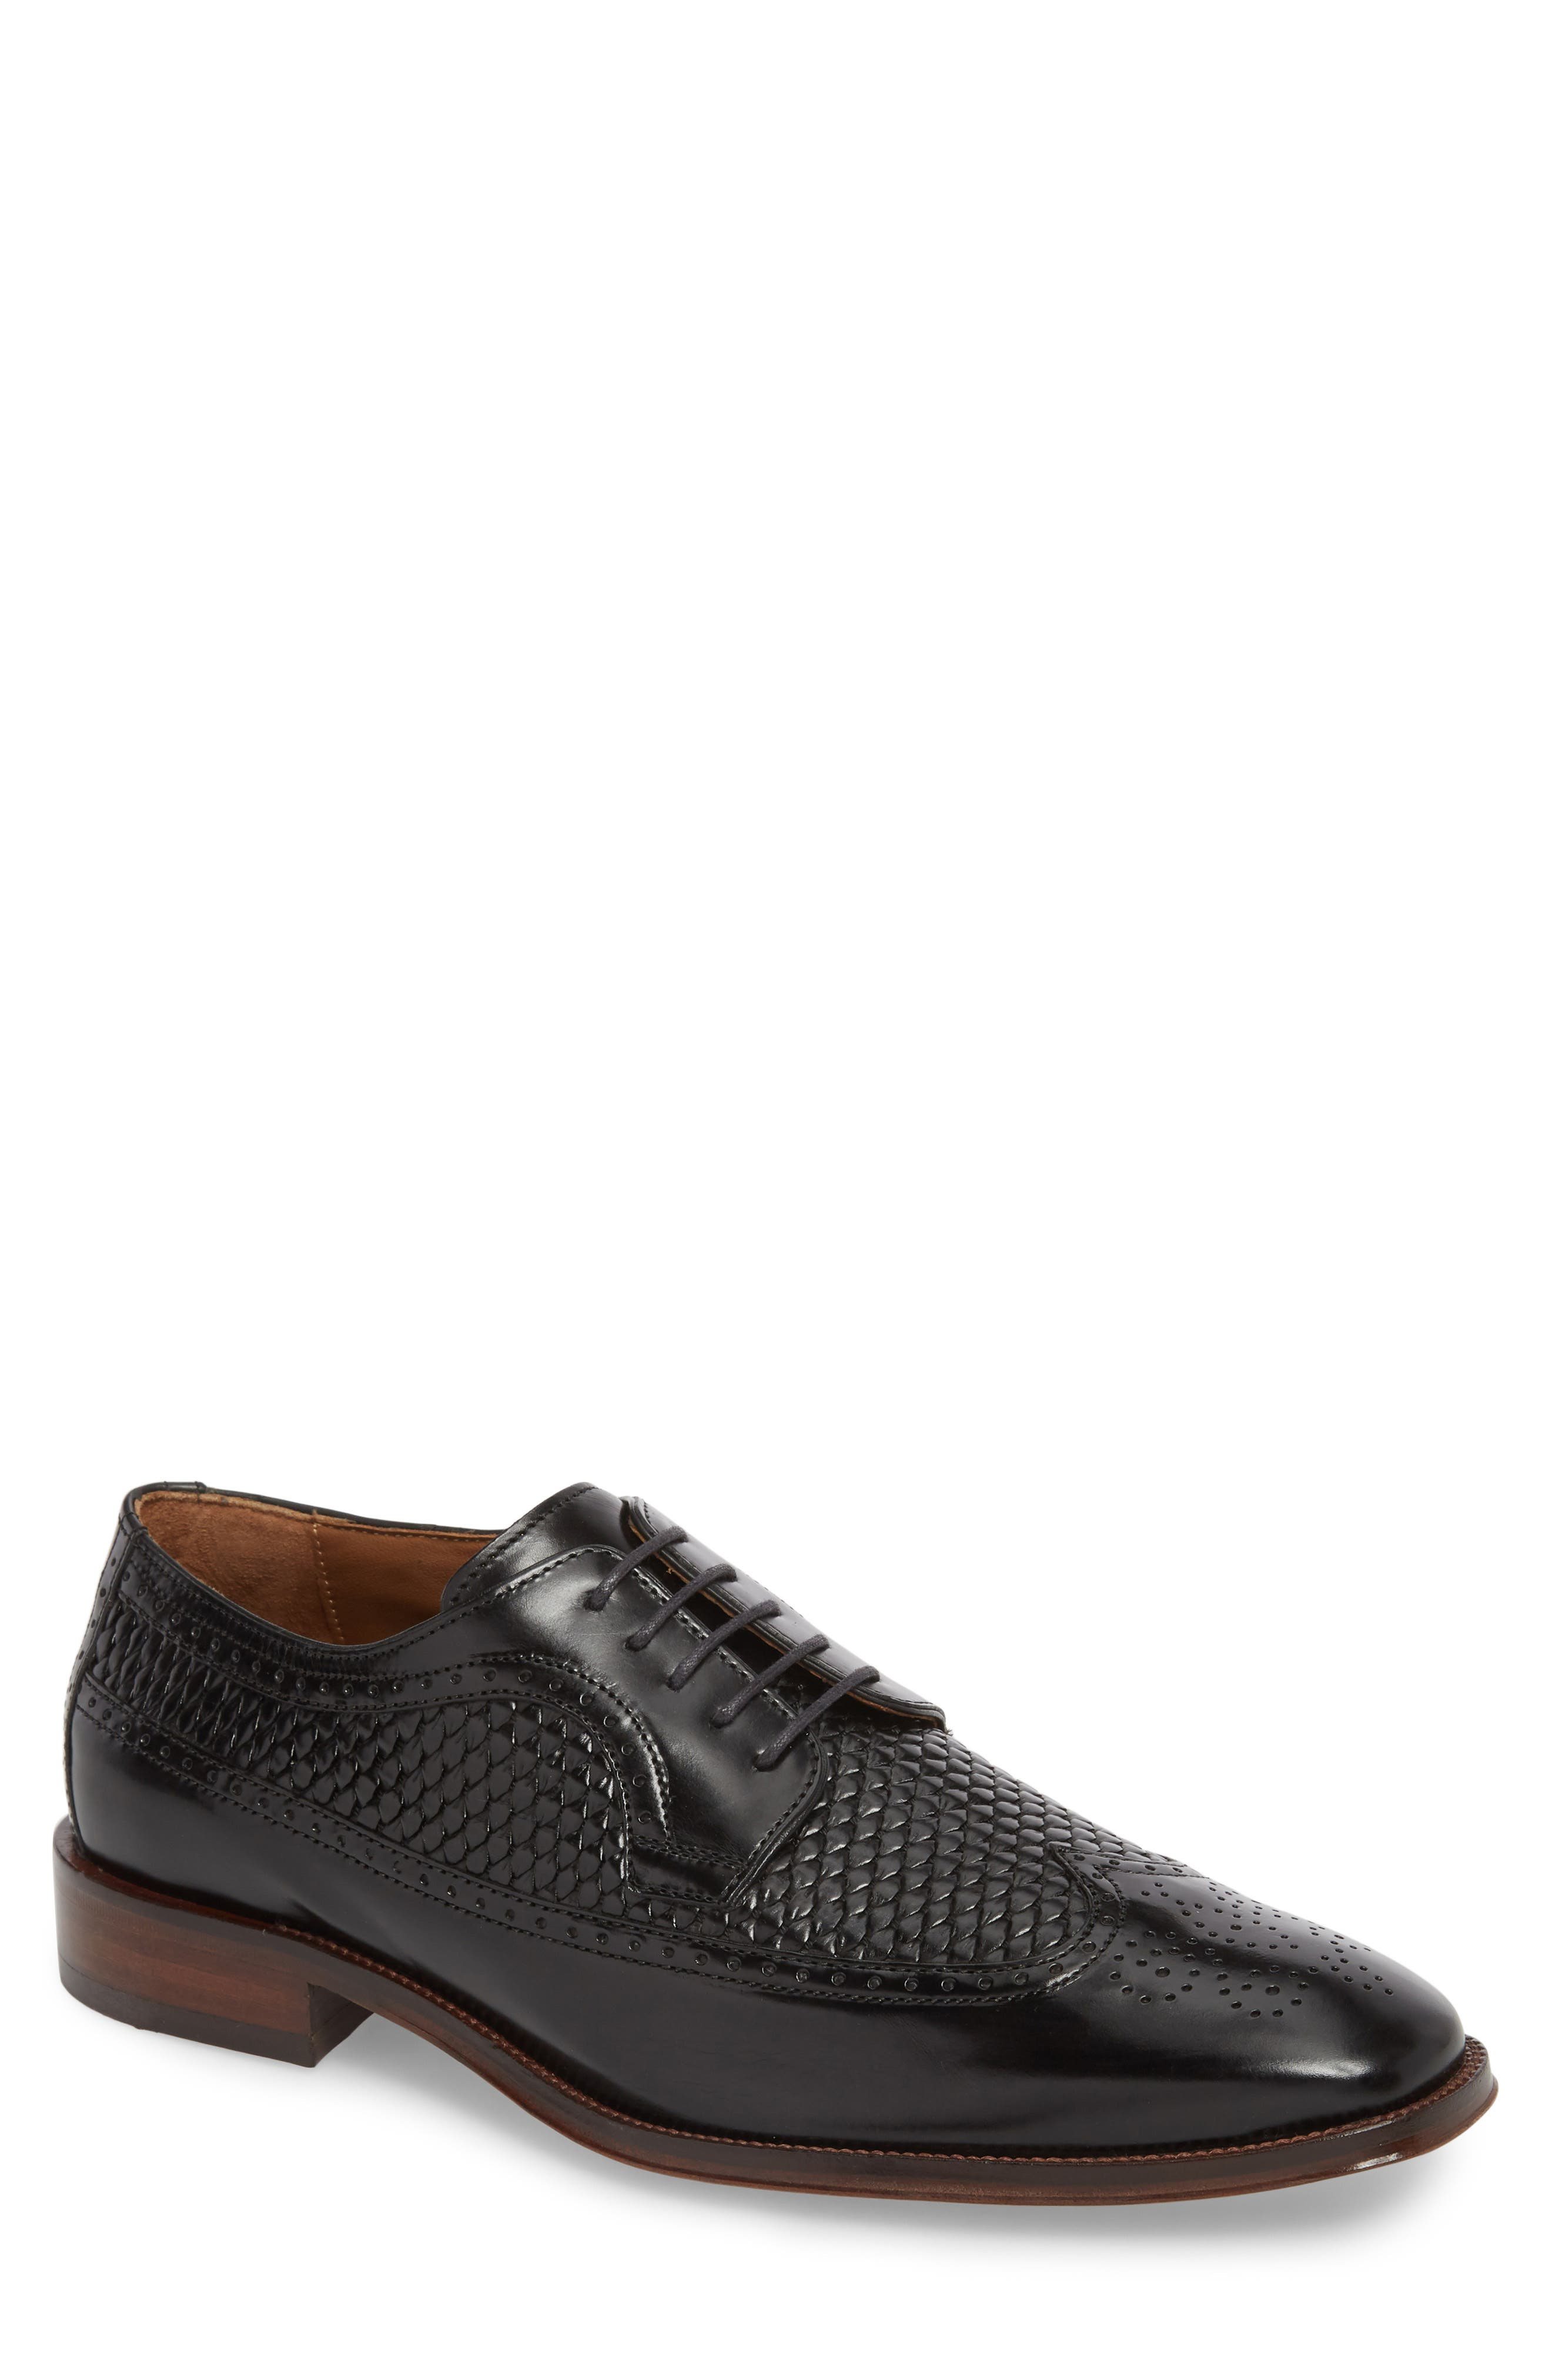 Boydstun Woven Wingtip Derby,                         Main,                         color, Black Leather